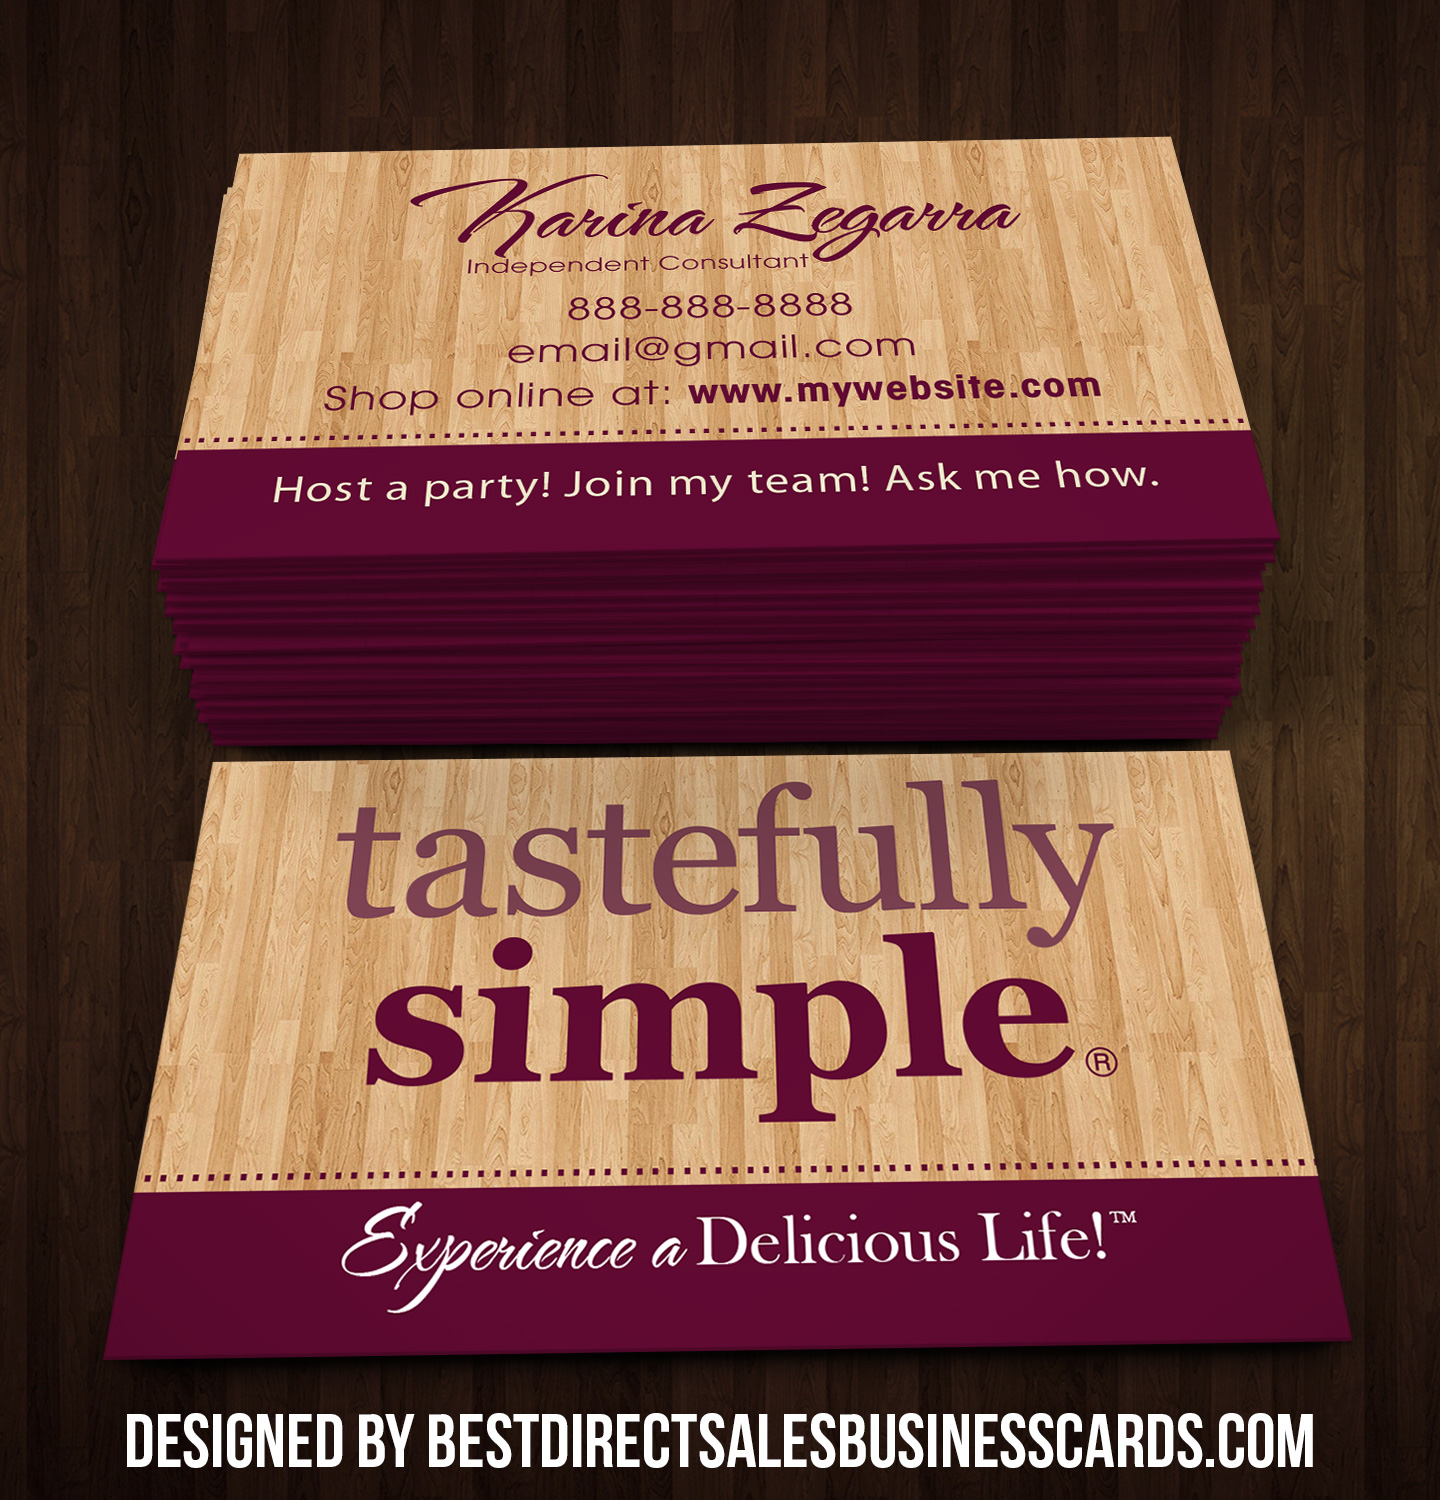 Tastefully Simple Business Cards - 2 · KZ Creative Services · Online ...